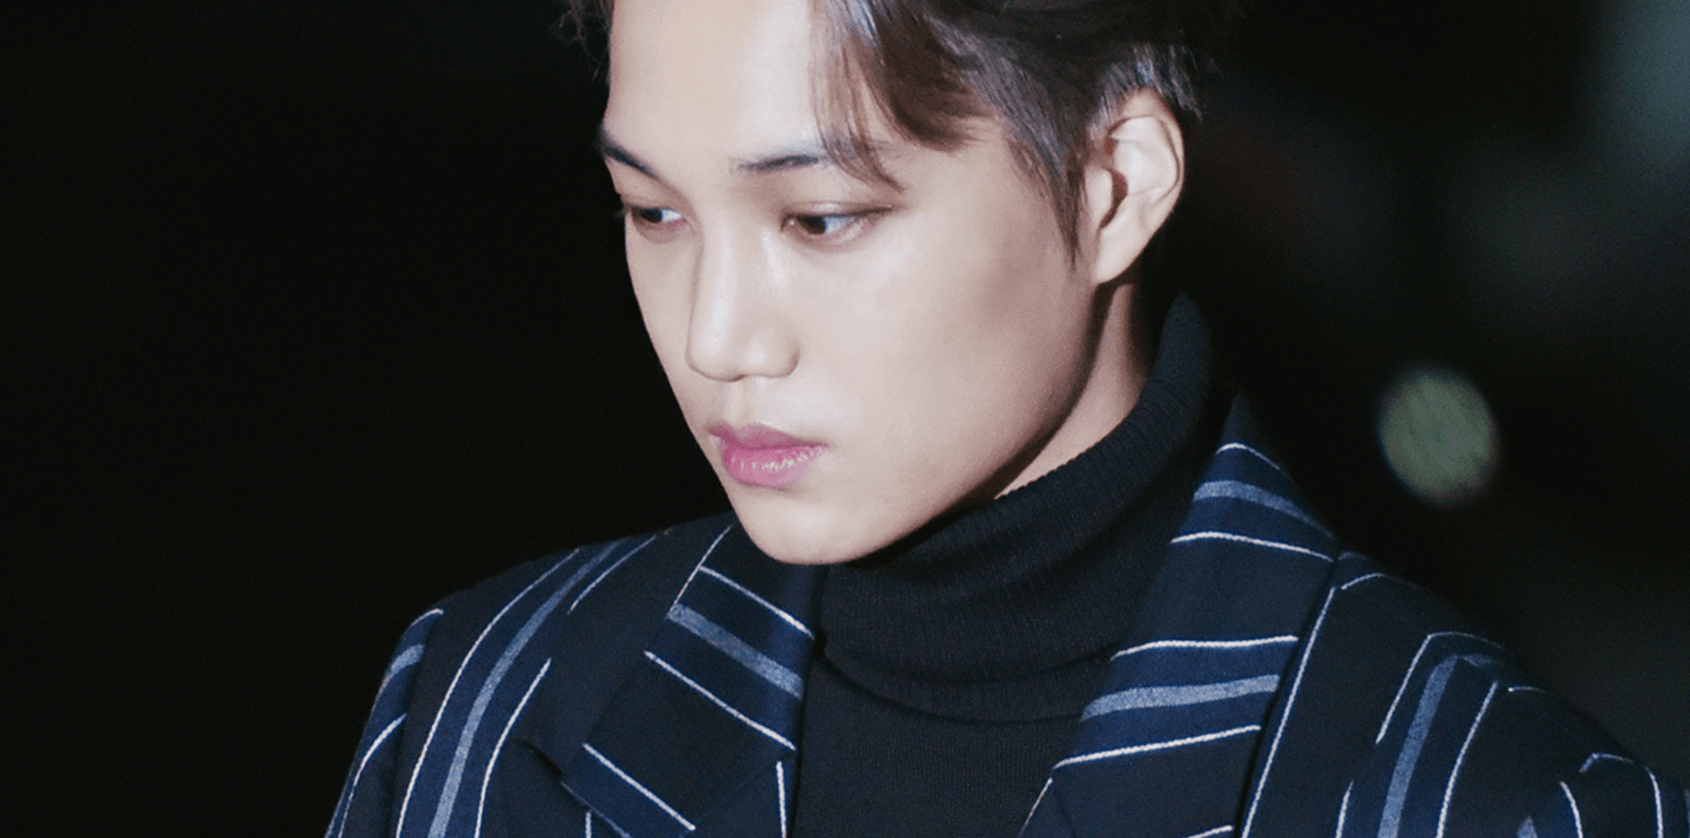 EXO's Kai opens up about his depression and how he deals with it